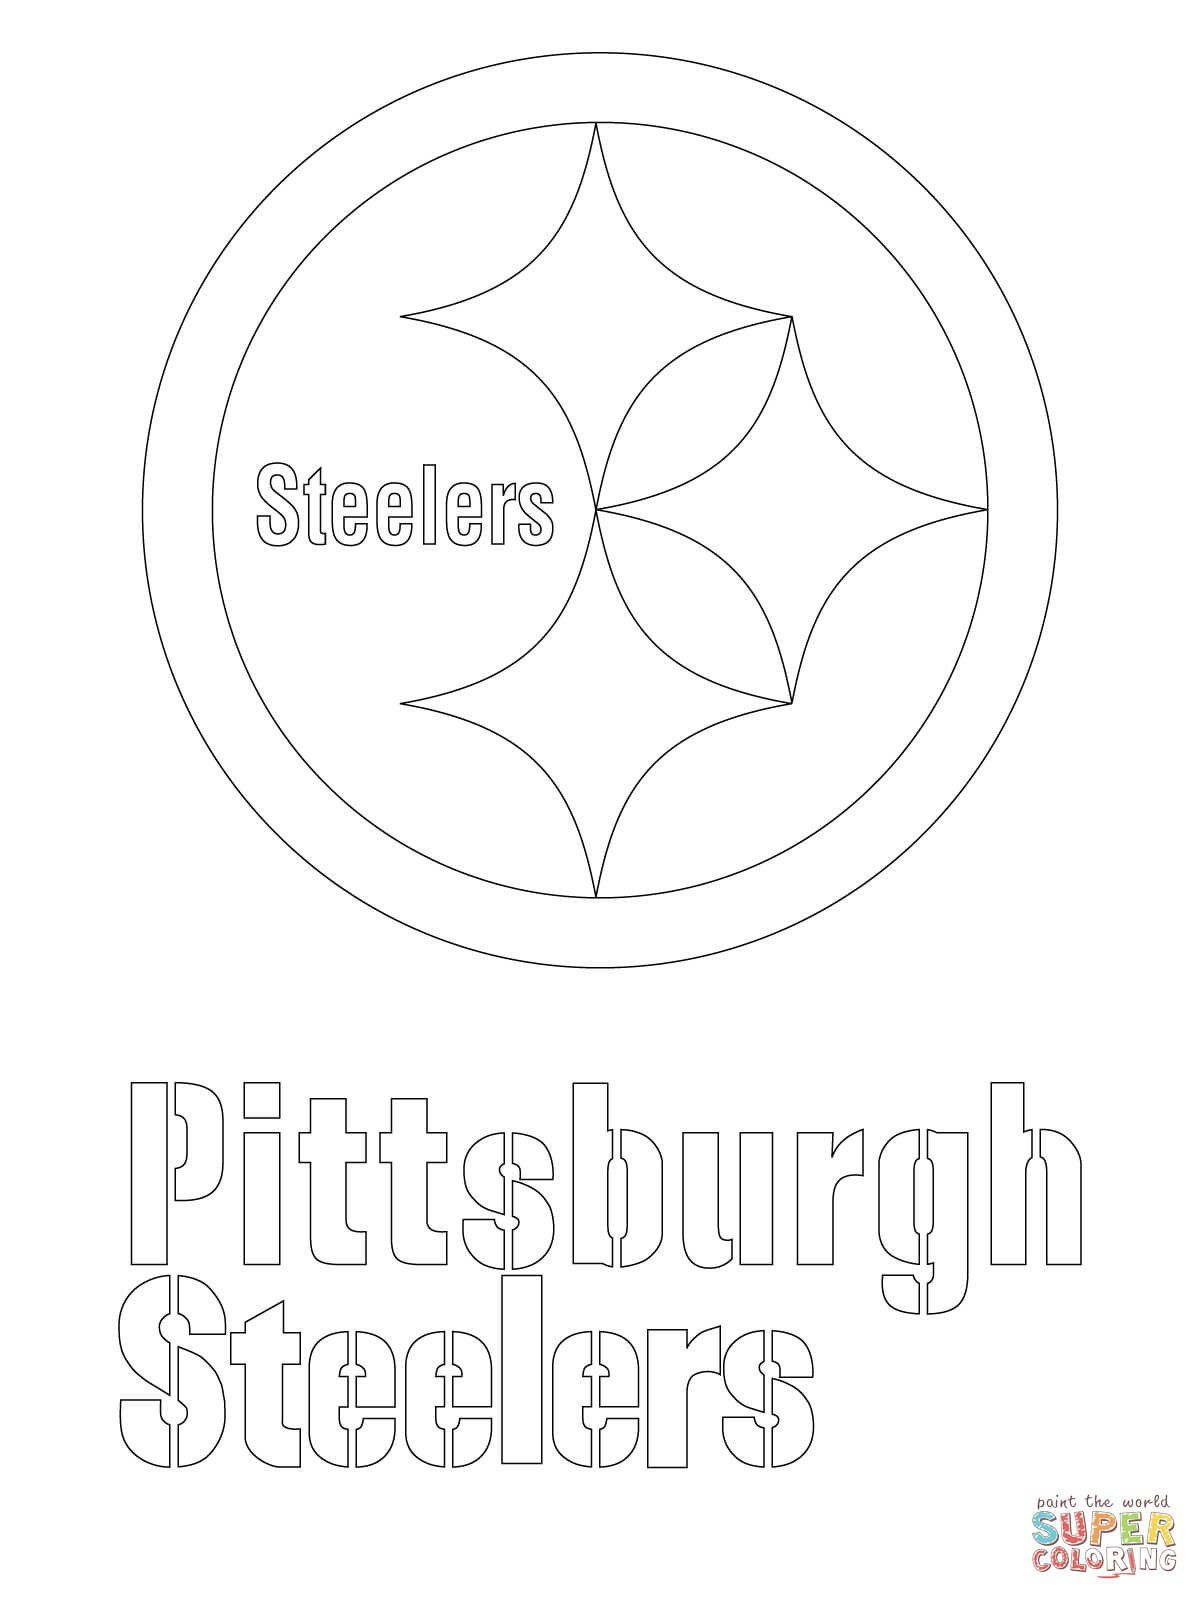 Nfl Mascot Coloring Pages Pittsburgh Steelers Logo Coloring Page